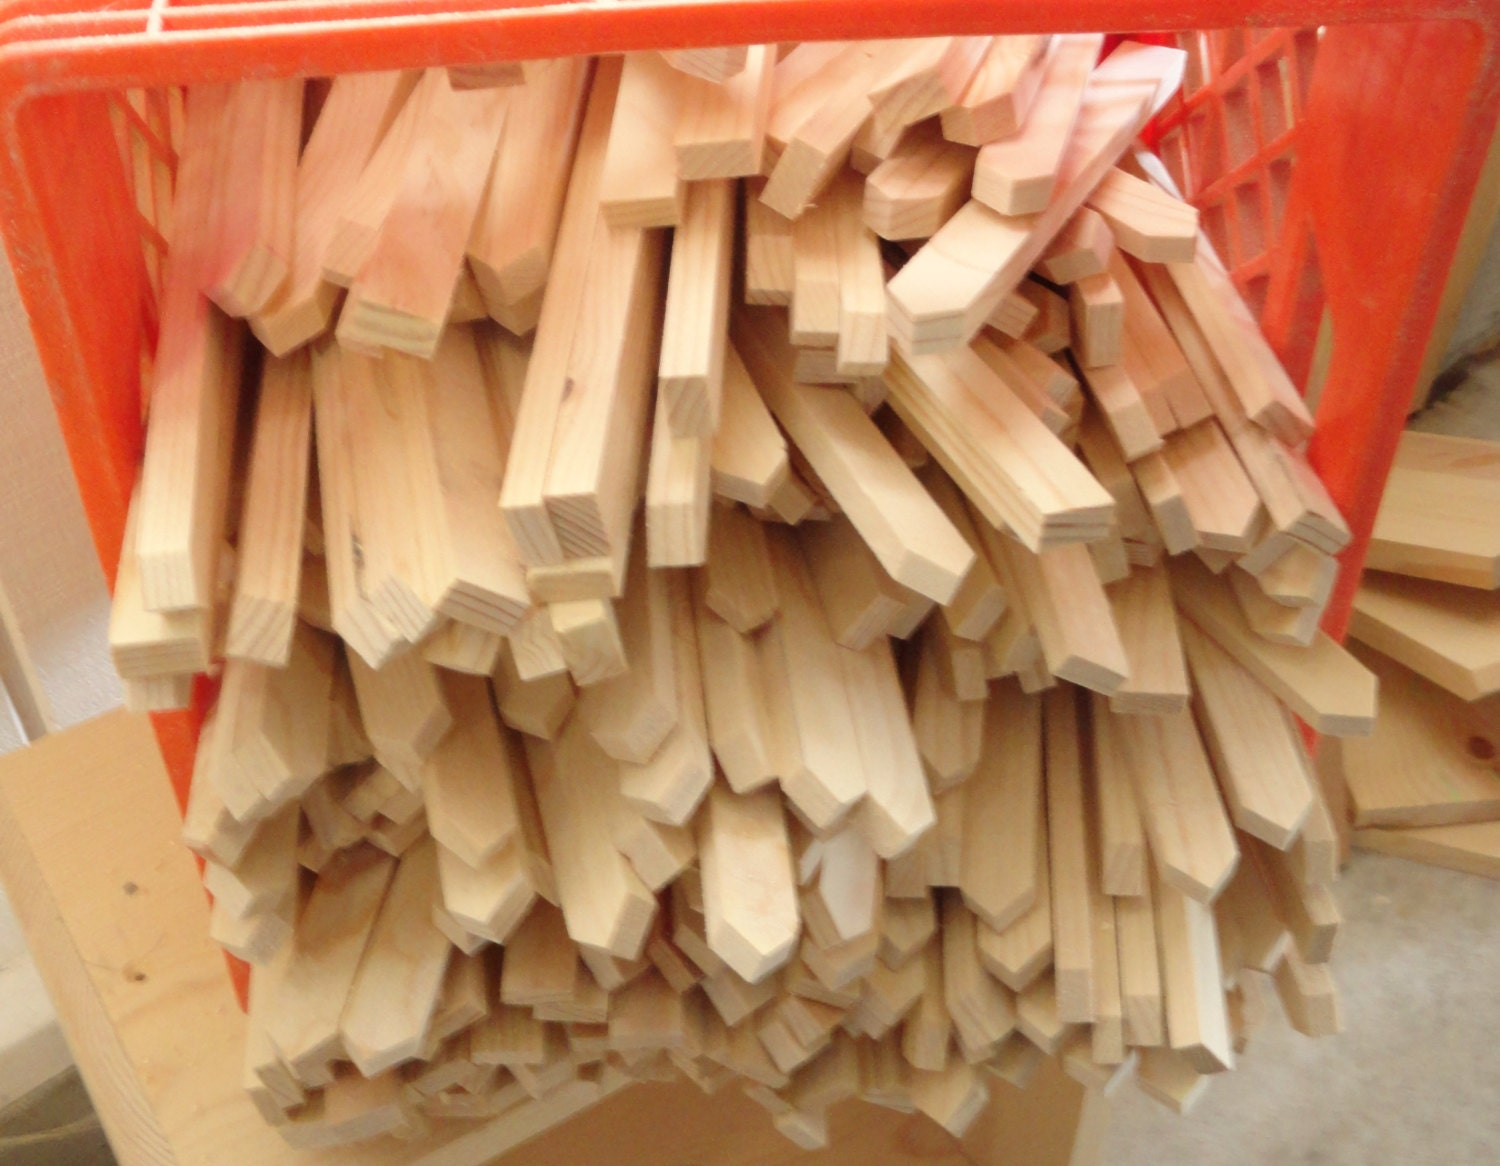 Diy wooden craft stakes fire starters garden stakes for Markers for wood crafts